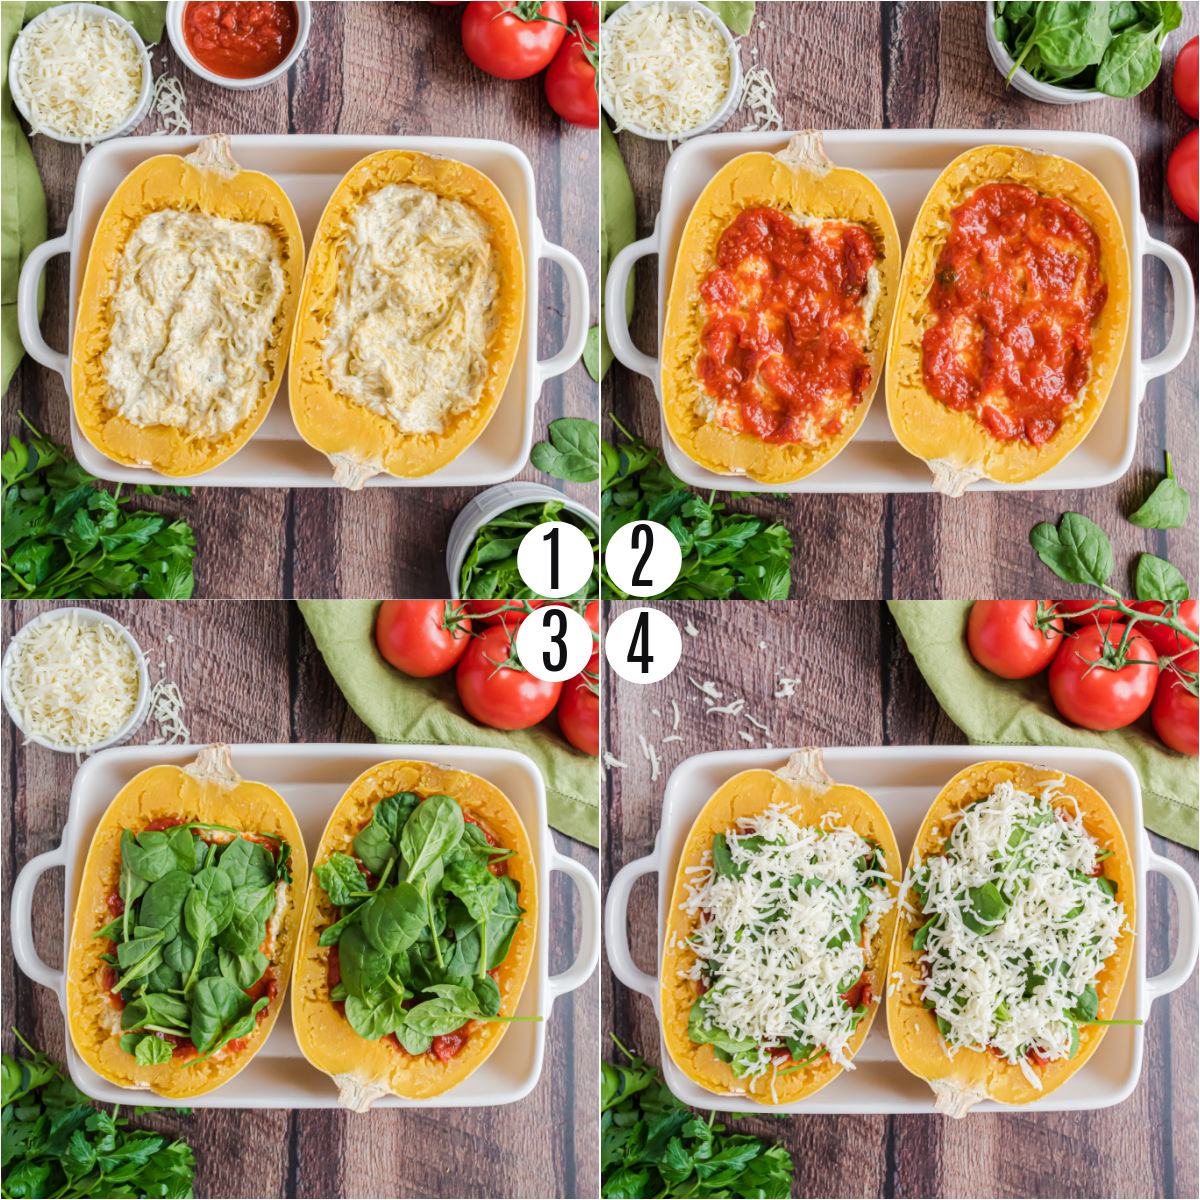 Step by step photos showing how to layer lasagna in spaghetti squash.